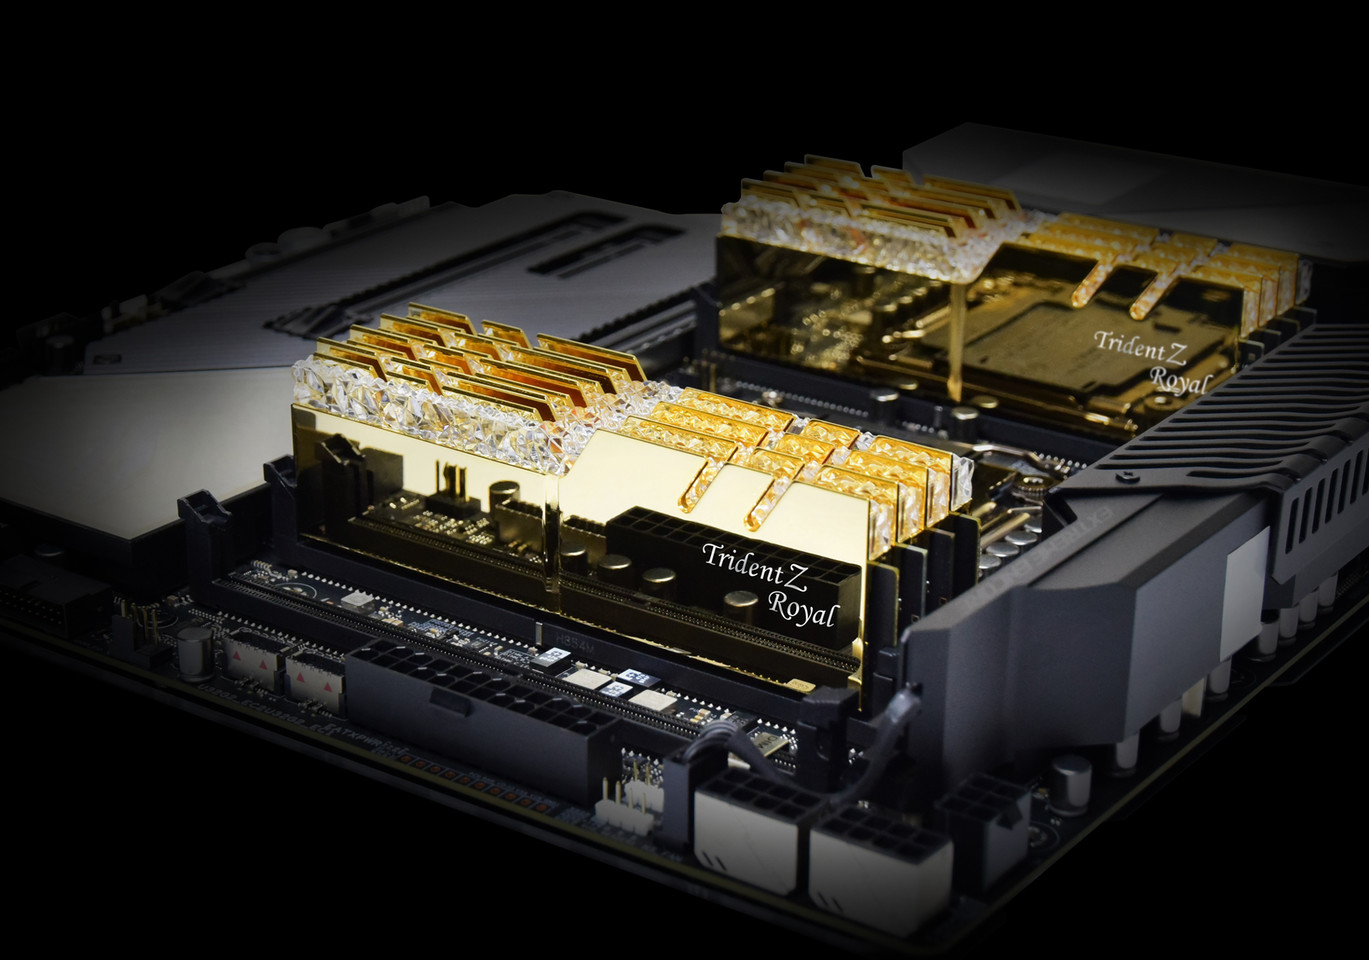 G Skill Releases 64GB (8GBx8) Memory Kits in DDR4-4300 CL19